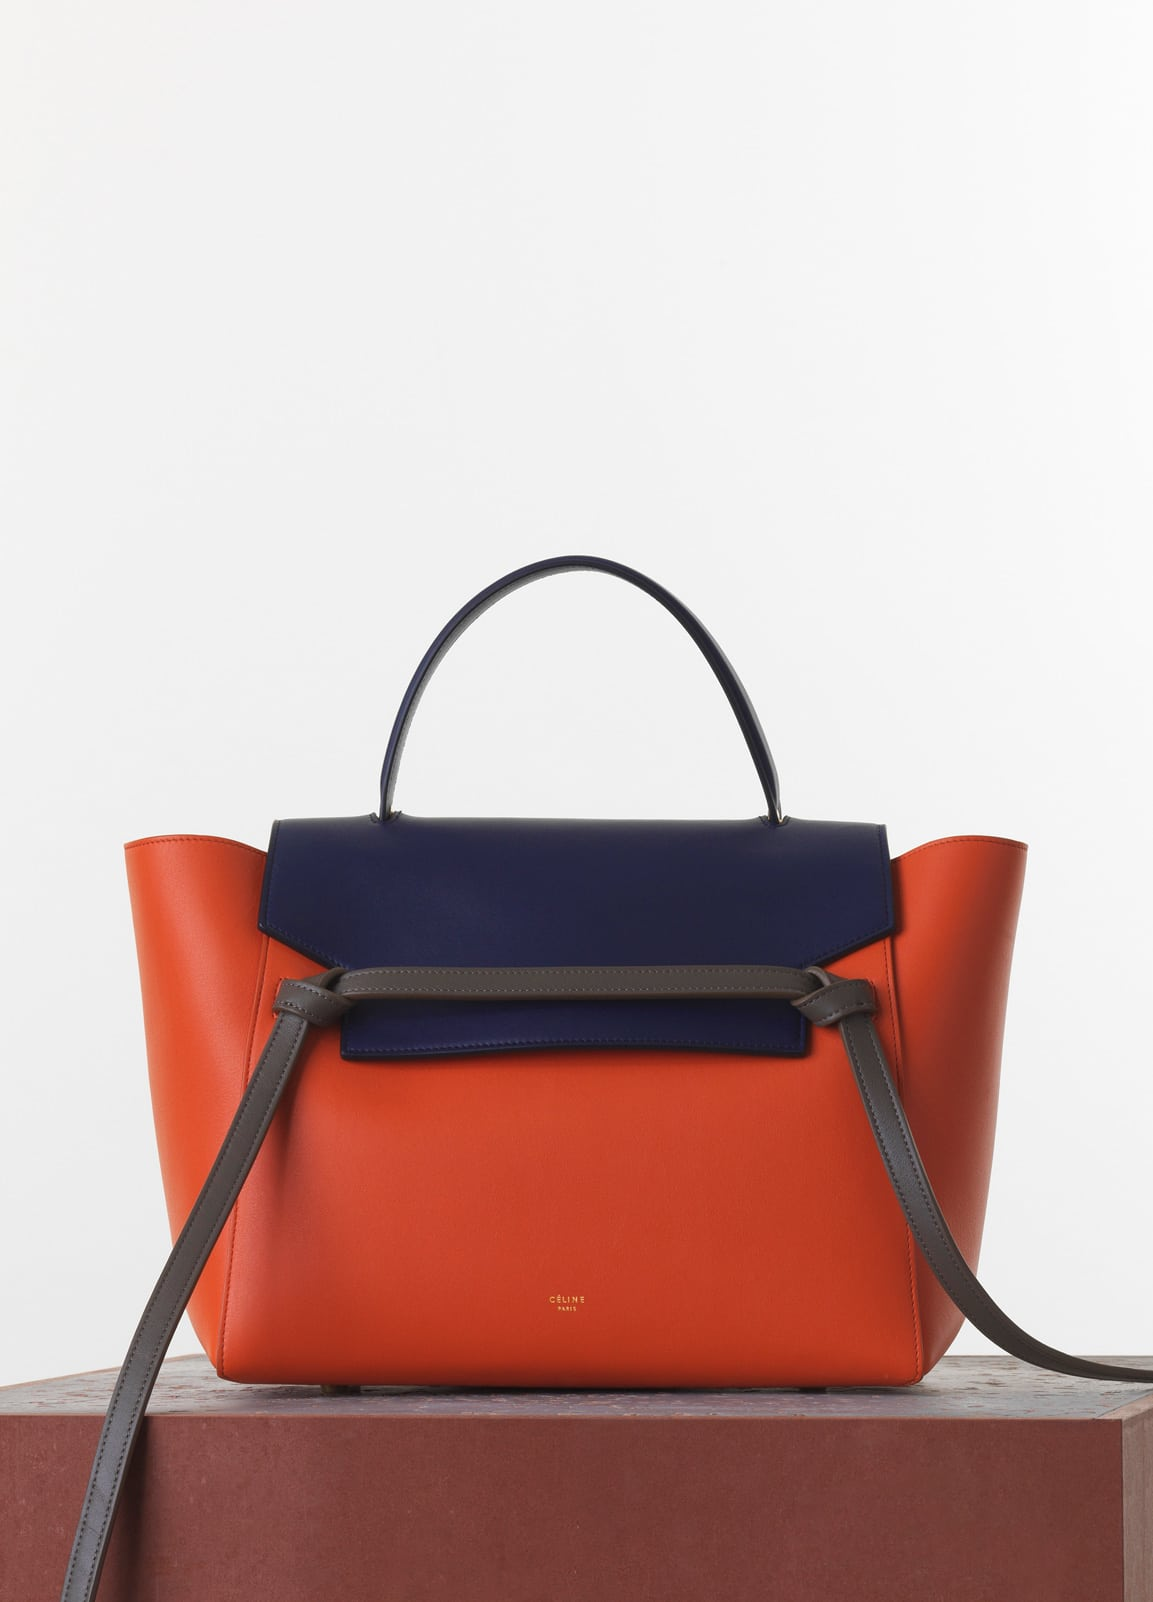 celine orange handbag